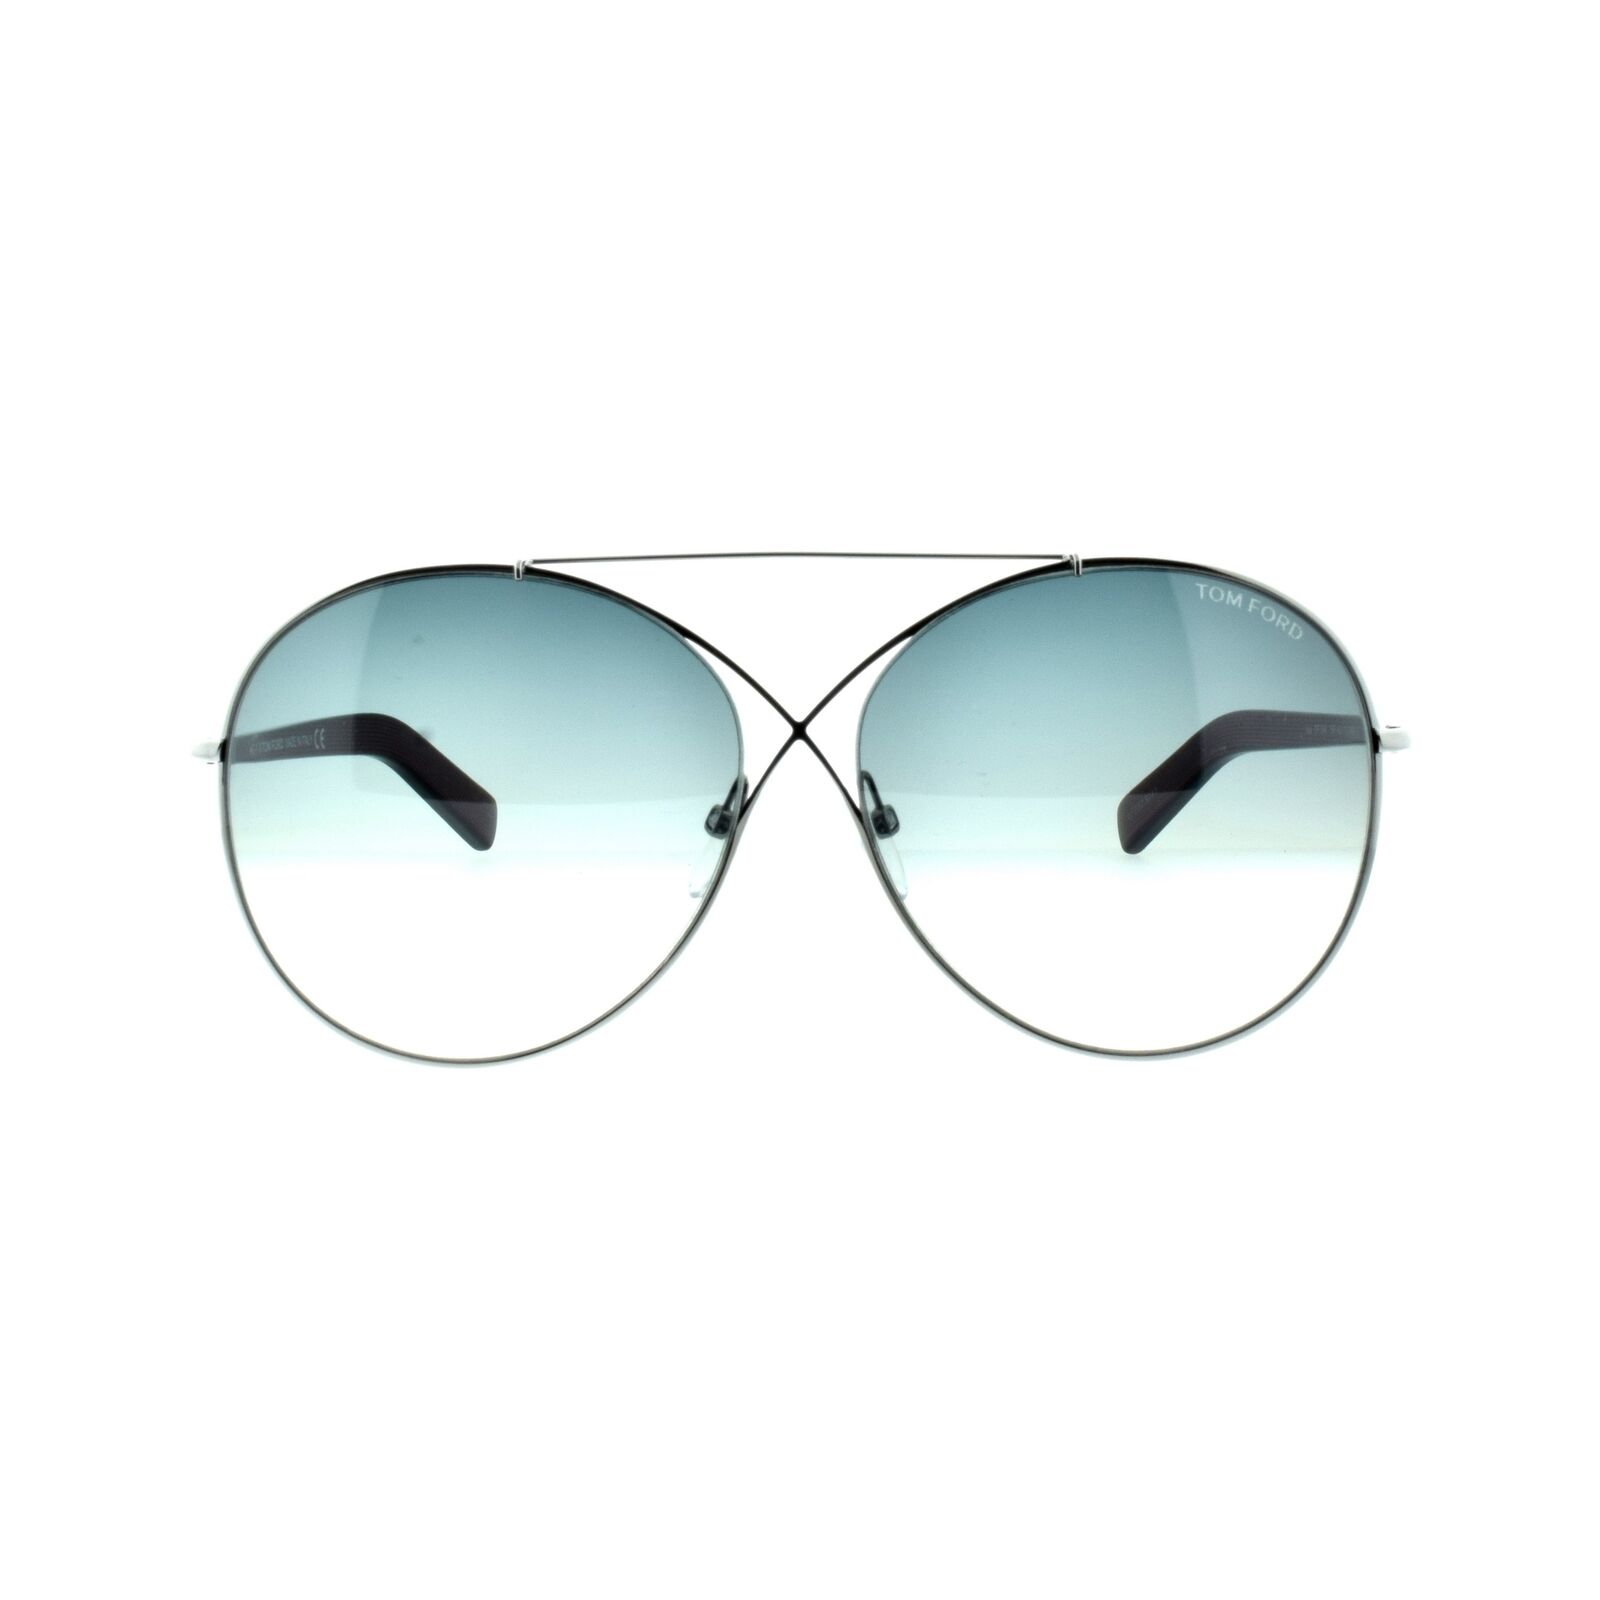 607fc0297fd Tom Ford Womens Women s Ft0394 62mm Sunglasses for sale online